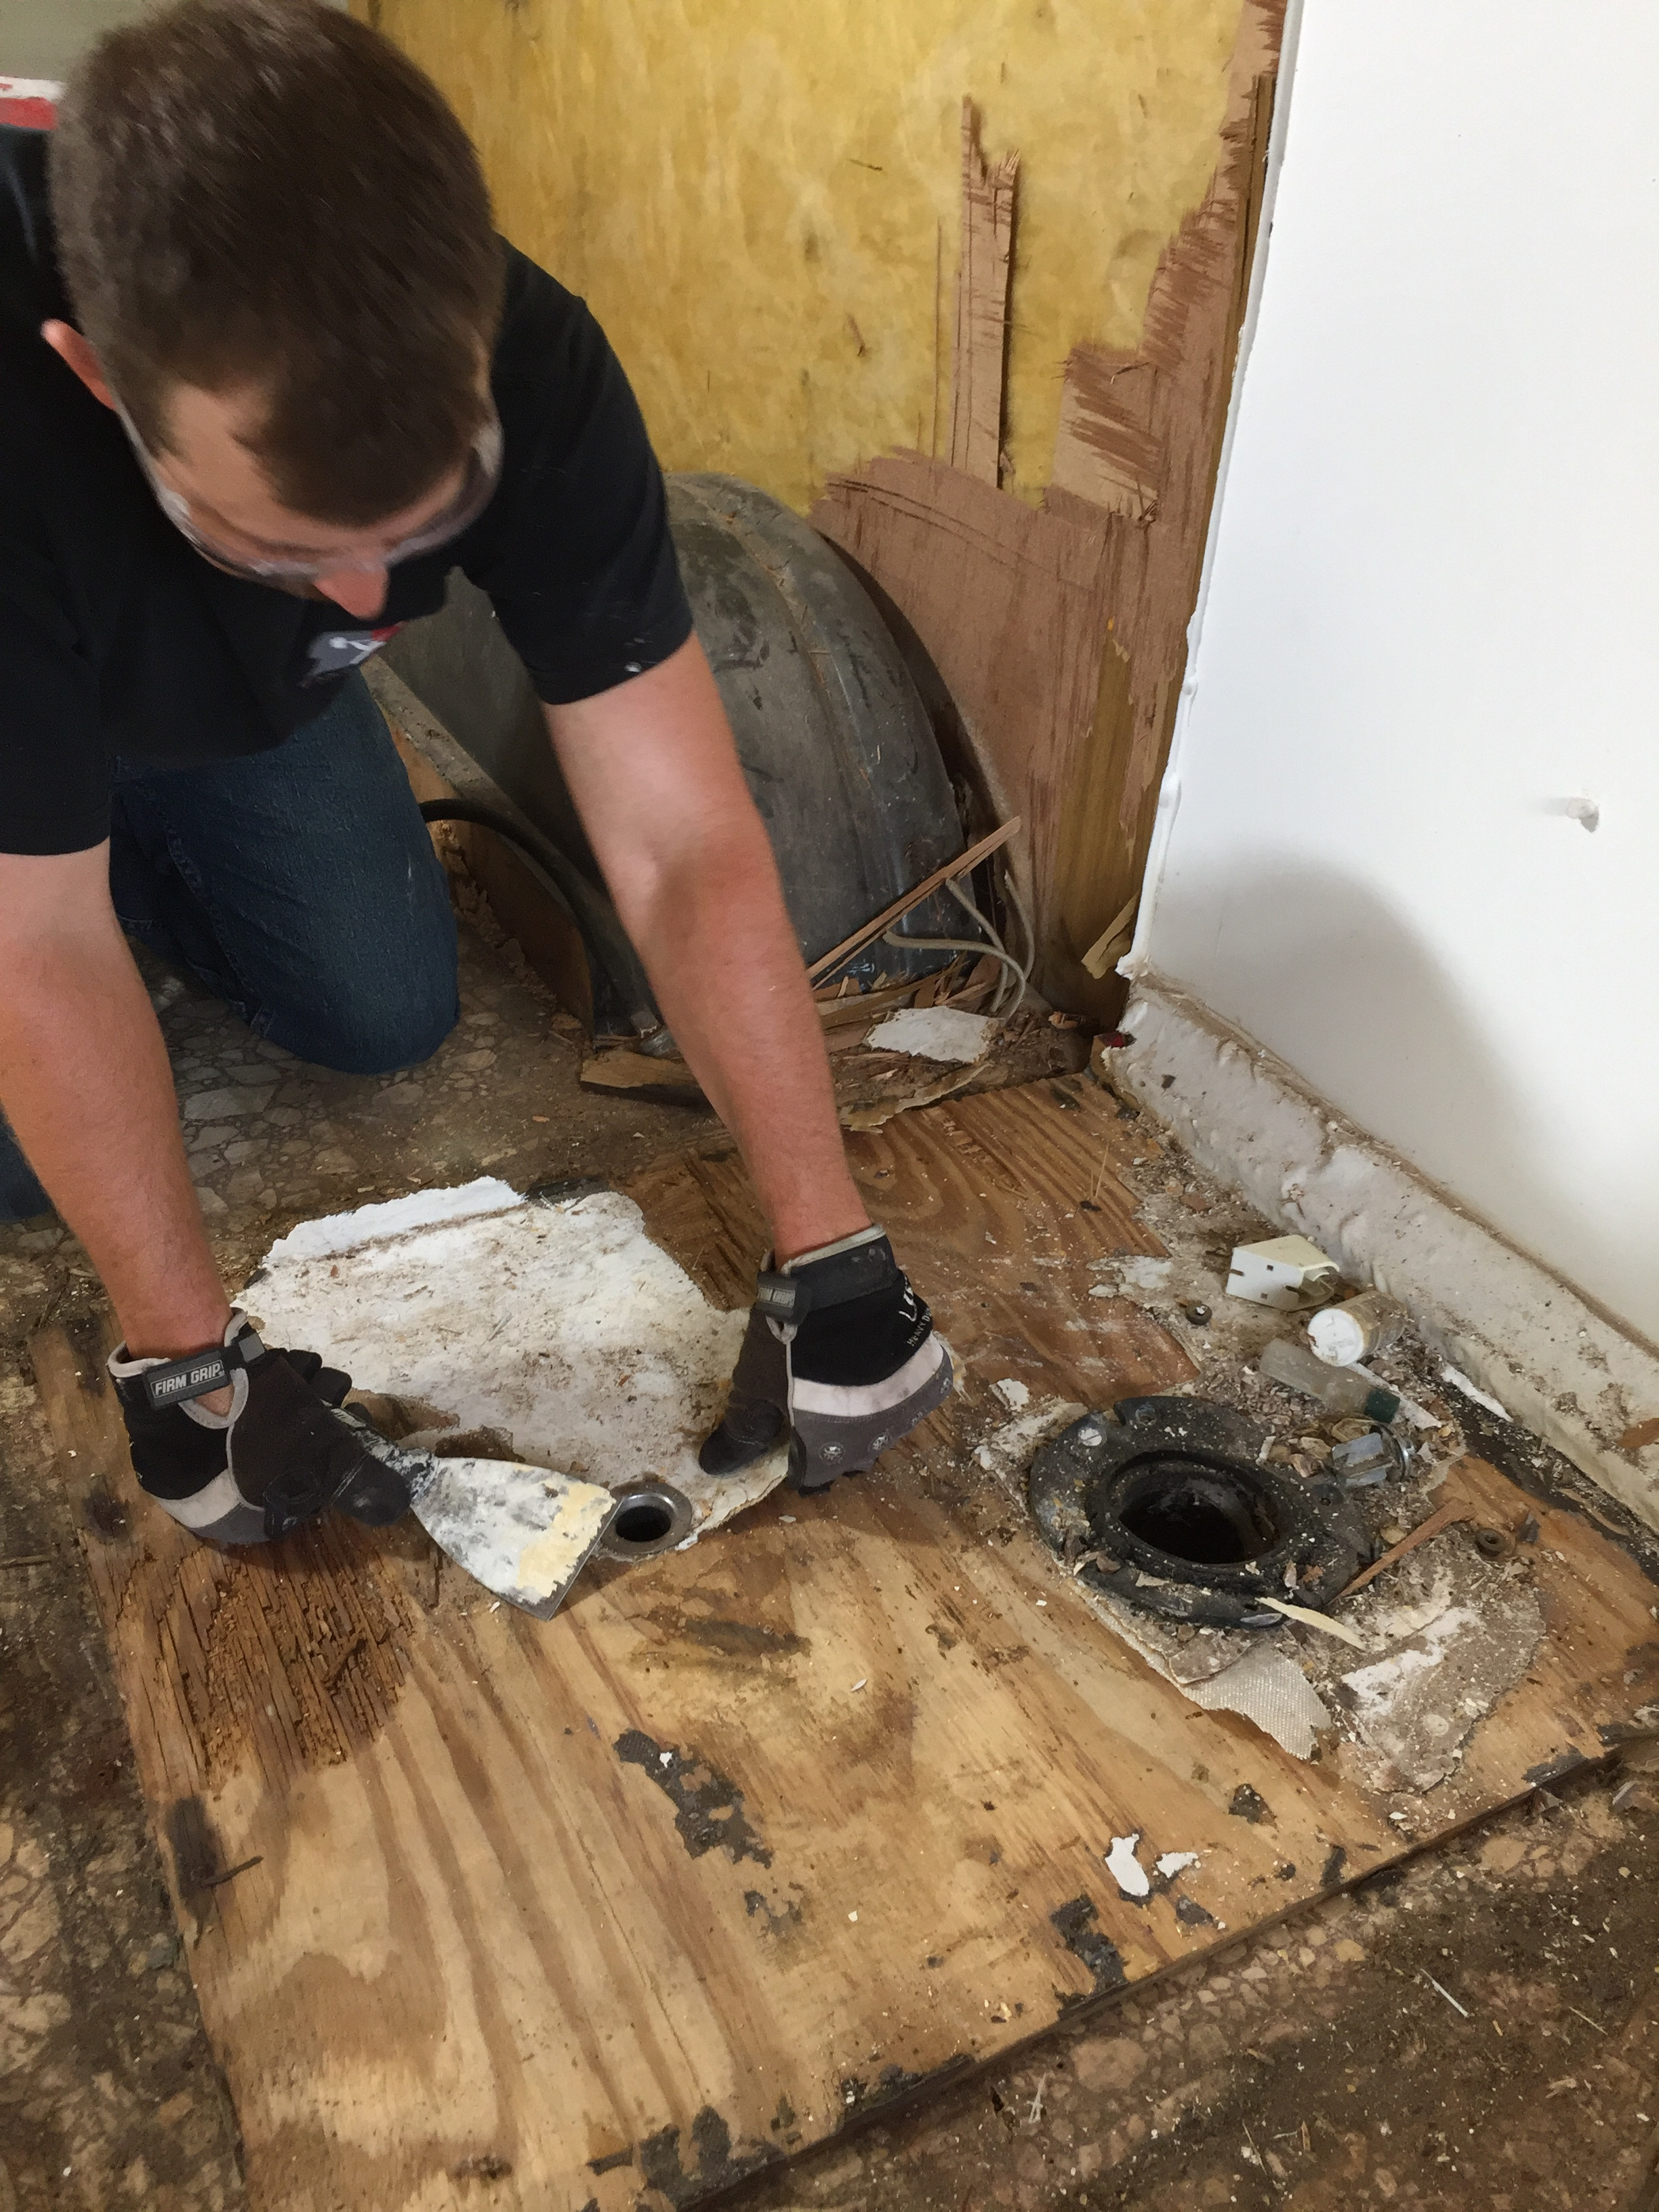 Scraping and chipping off the waterproof, fiberglass coating bit by bit to uncover the screws and rotted shower floor.